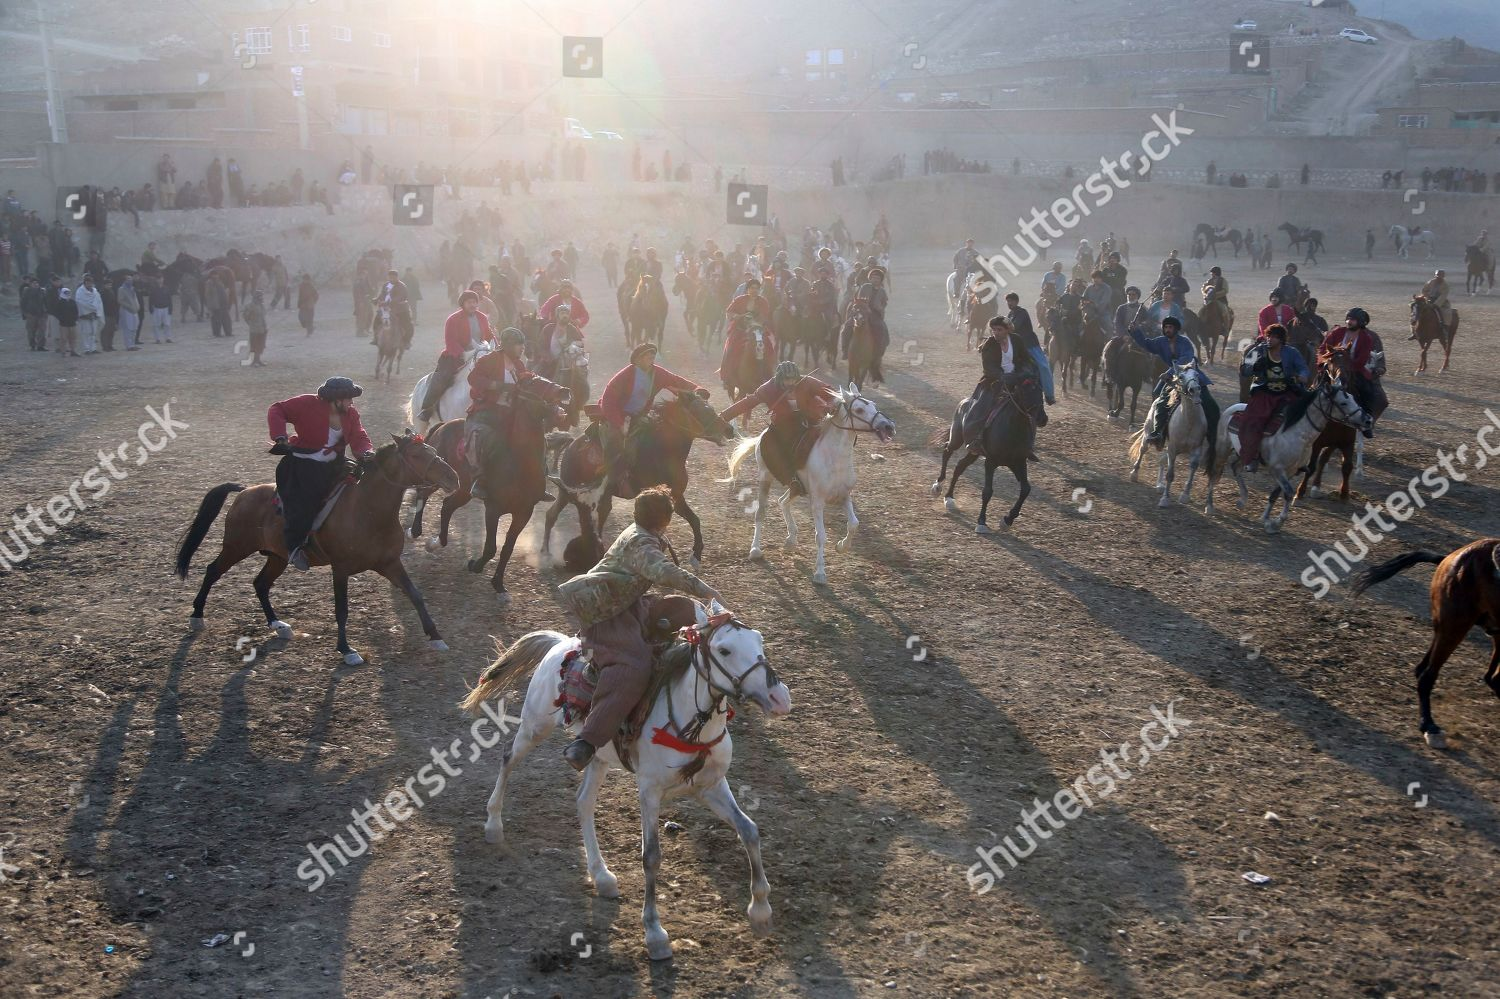 Afghan horse riders compete goat during friendly Editorial